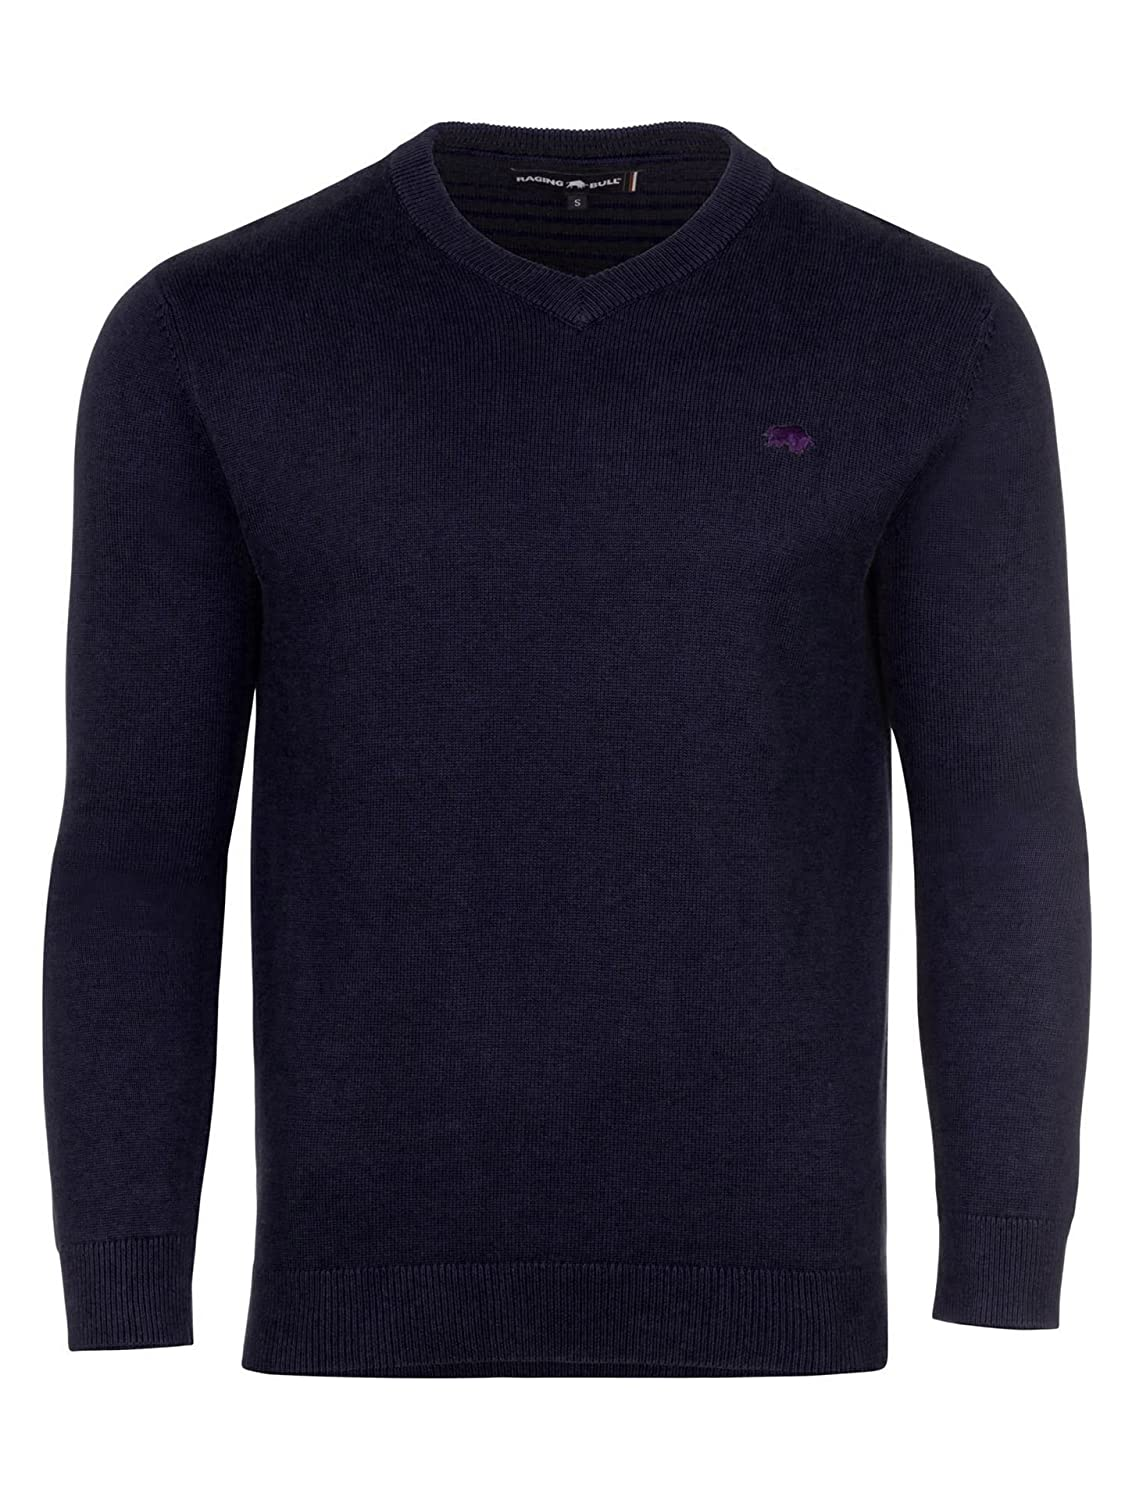 d77355df3a5033 Raging Bull Men's Big and Tall V-Neck Cott/Cash Sweater Jumper:  Amazon.co.uk: Clothing